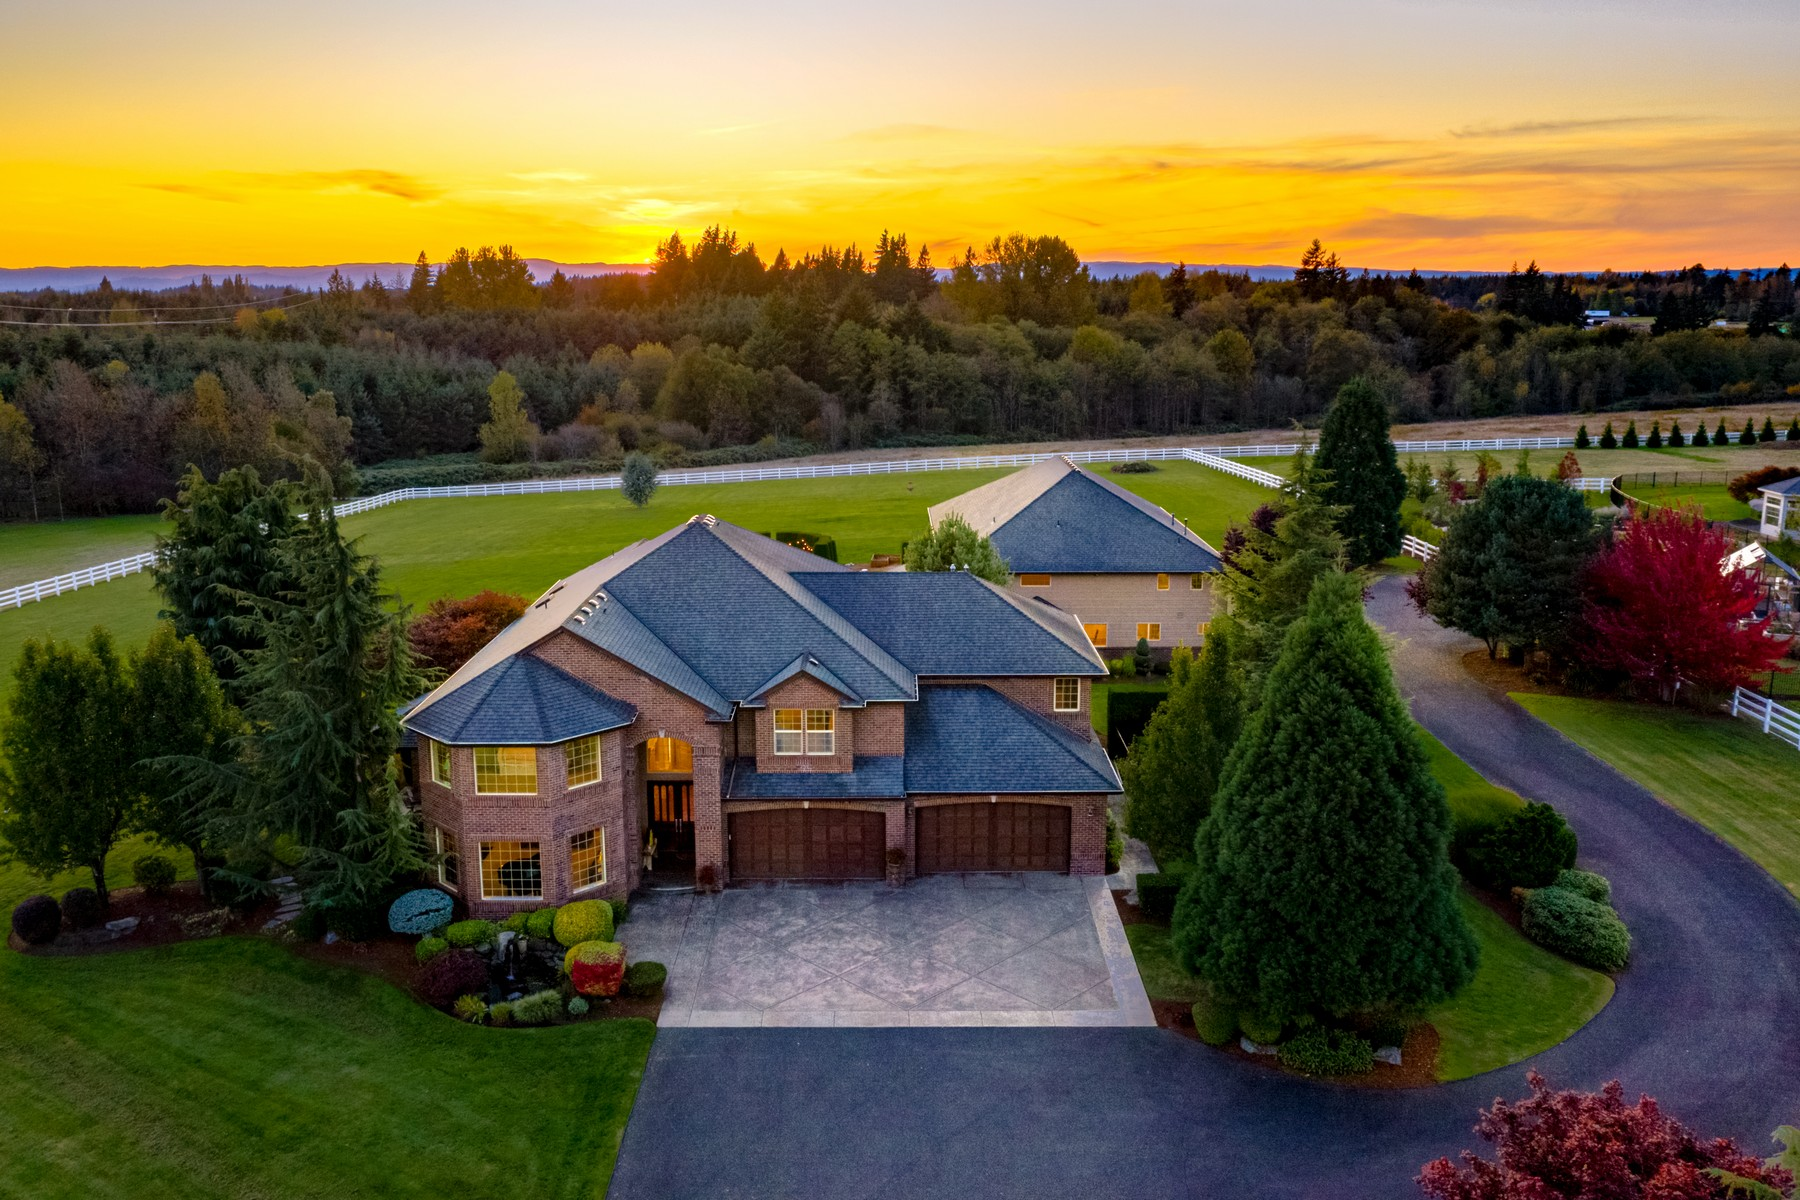 Other Residential Homes for Sale at 30100 NW 18TH PL Ridgefield, WA 98642 30100 18th Pl Ridgefield, Washington 98642 United States